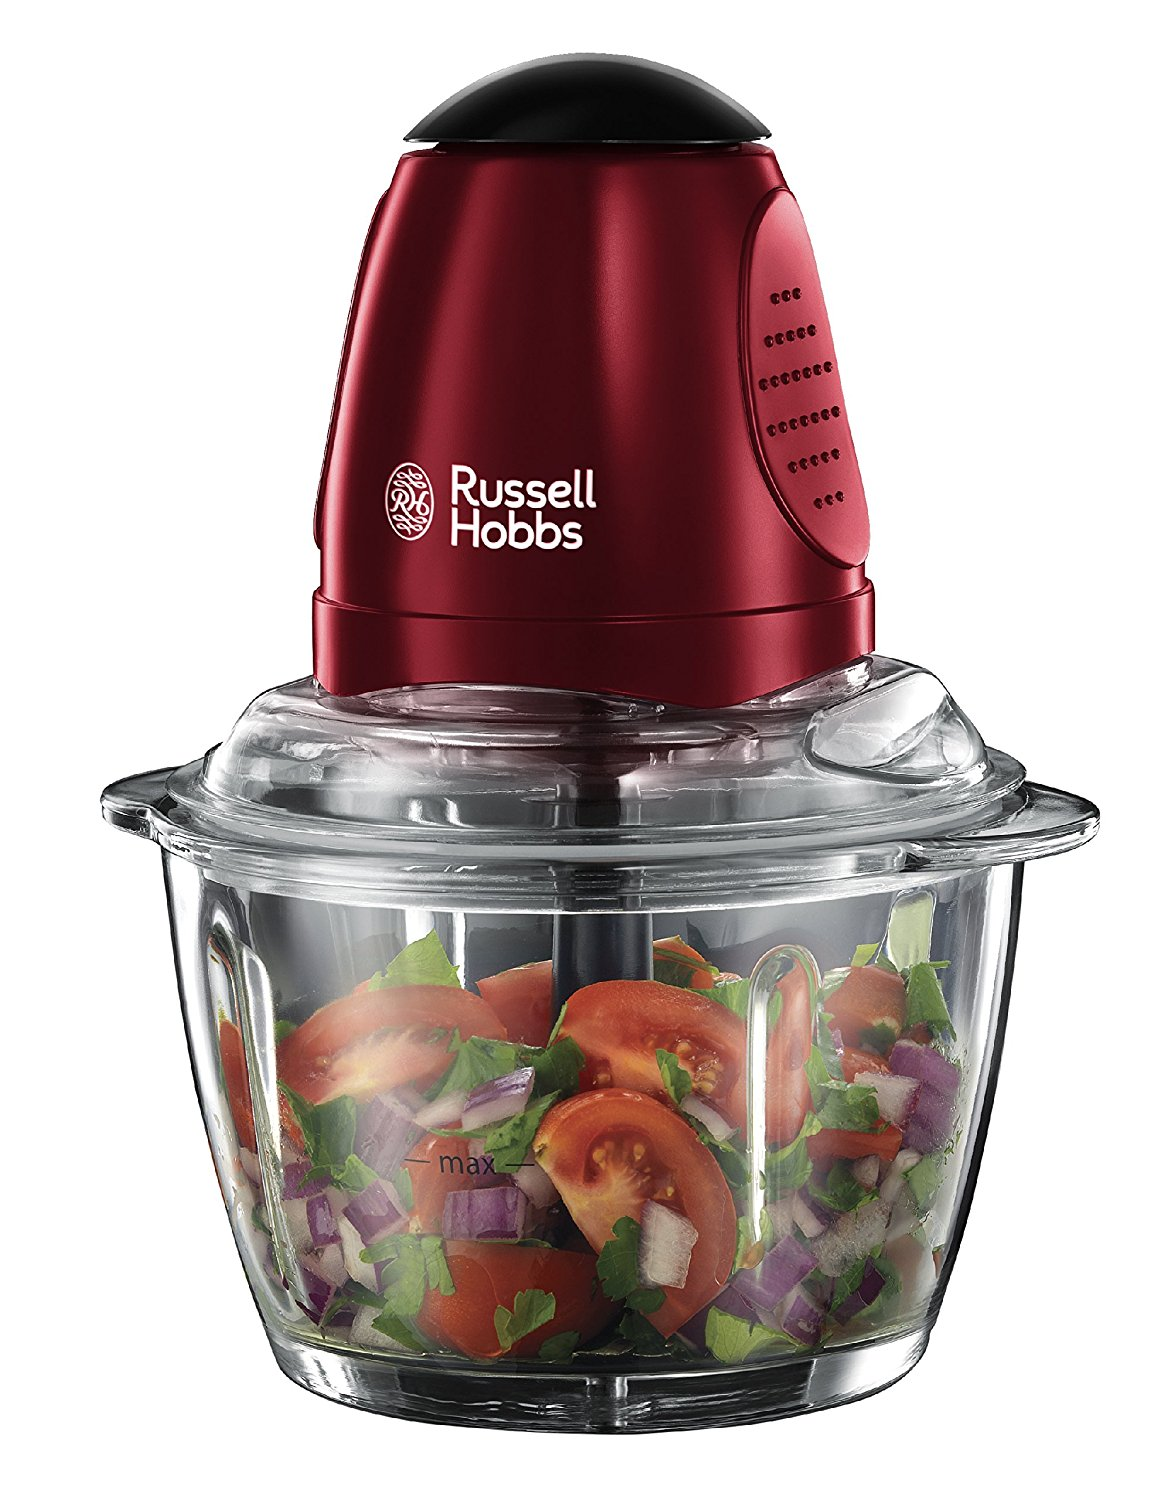 russell hobbs 20320 rosso mini chopper food processor 200w red ebay. Black Bedroom Furniture Sets. Home Design Ideas